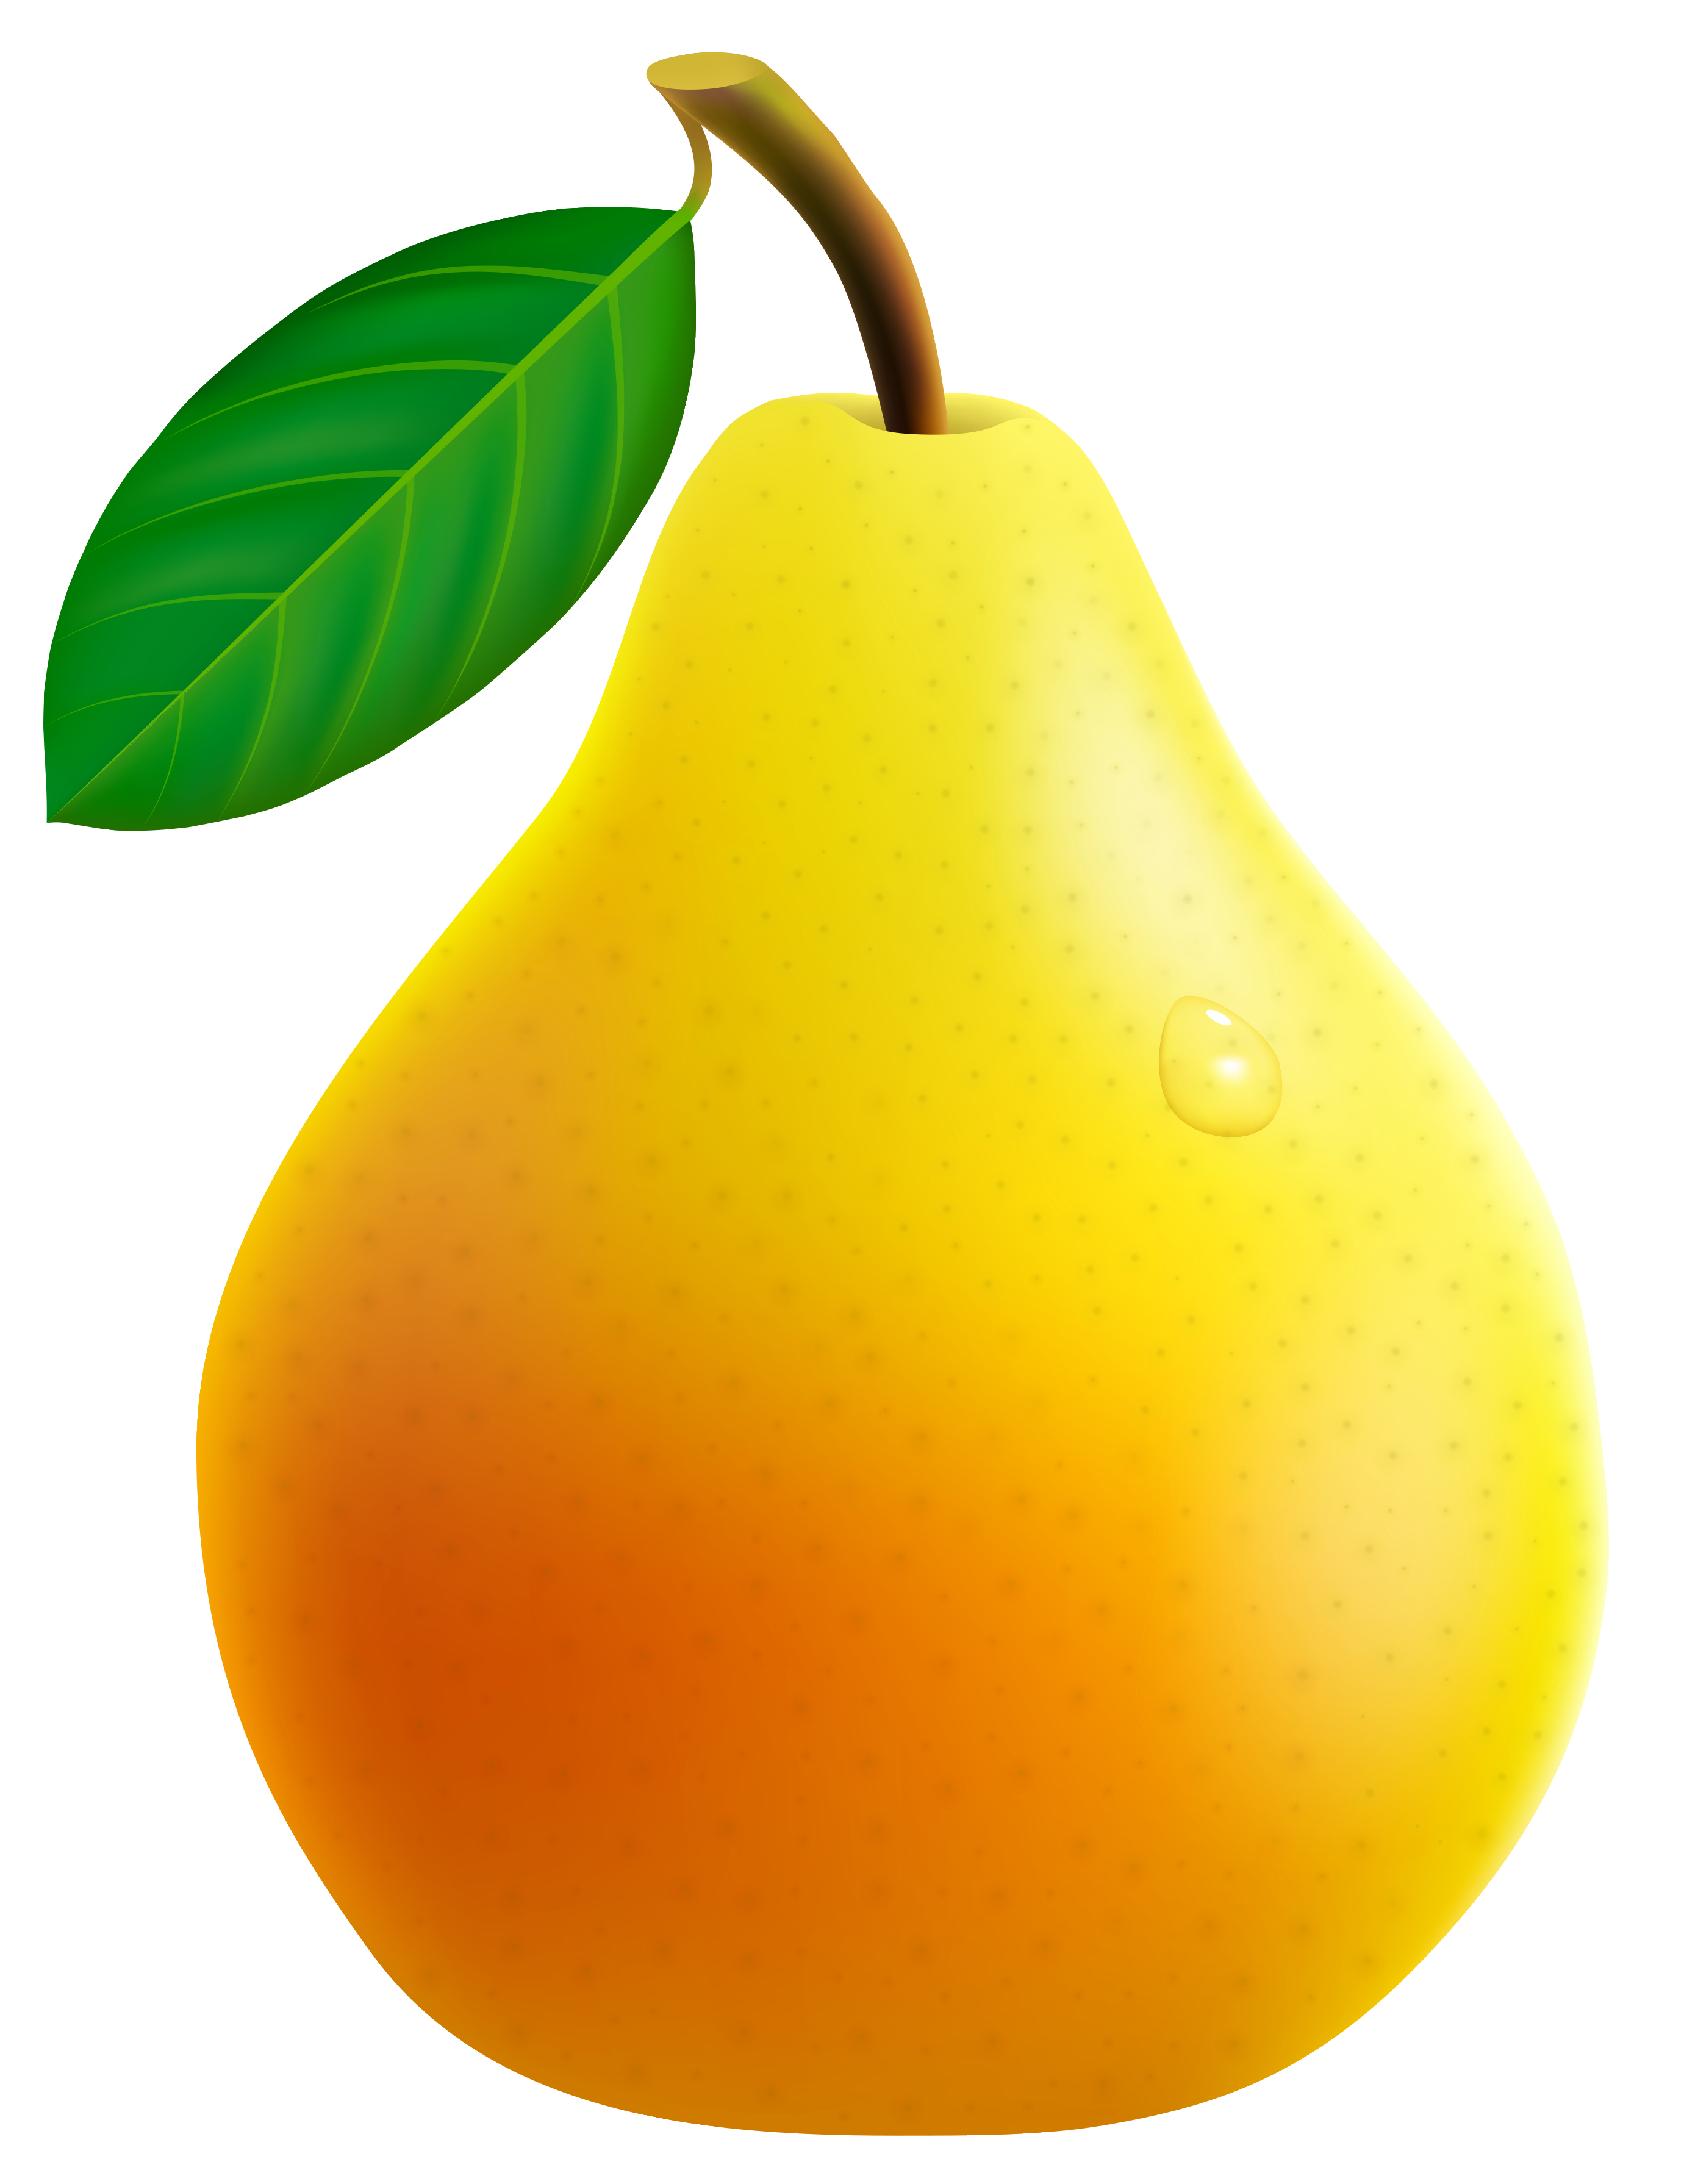 Fruit clipart pear. Yellow png vector image